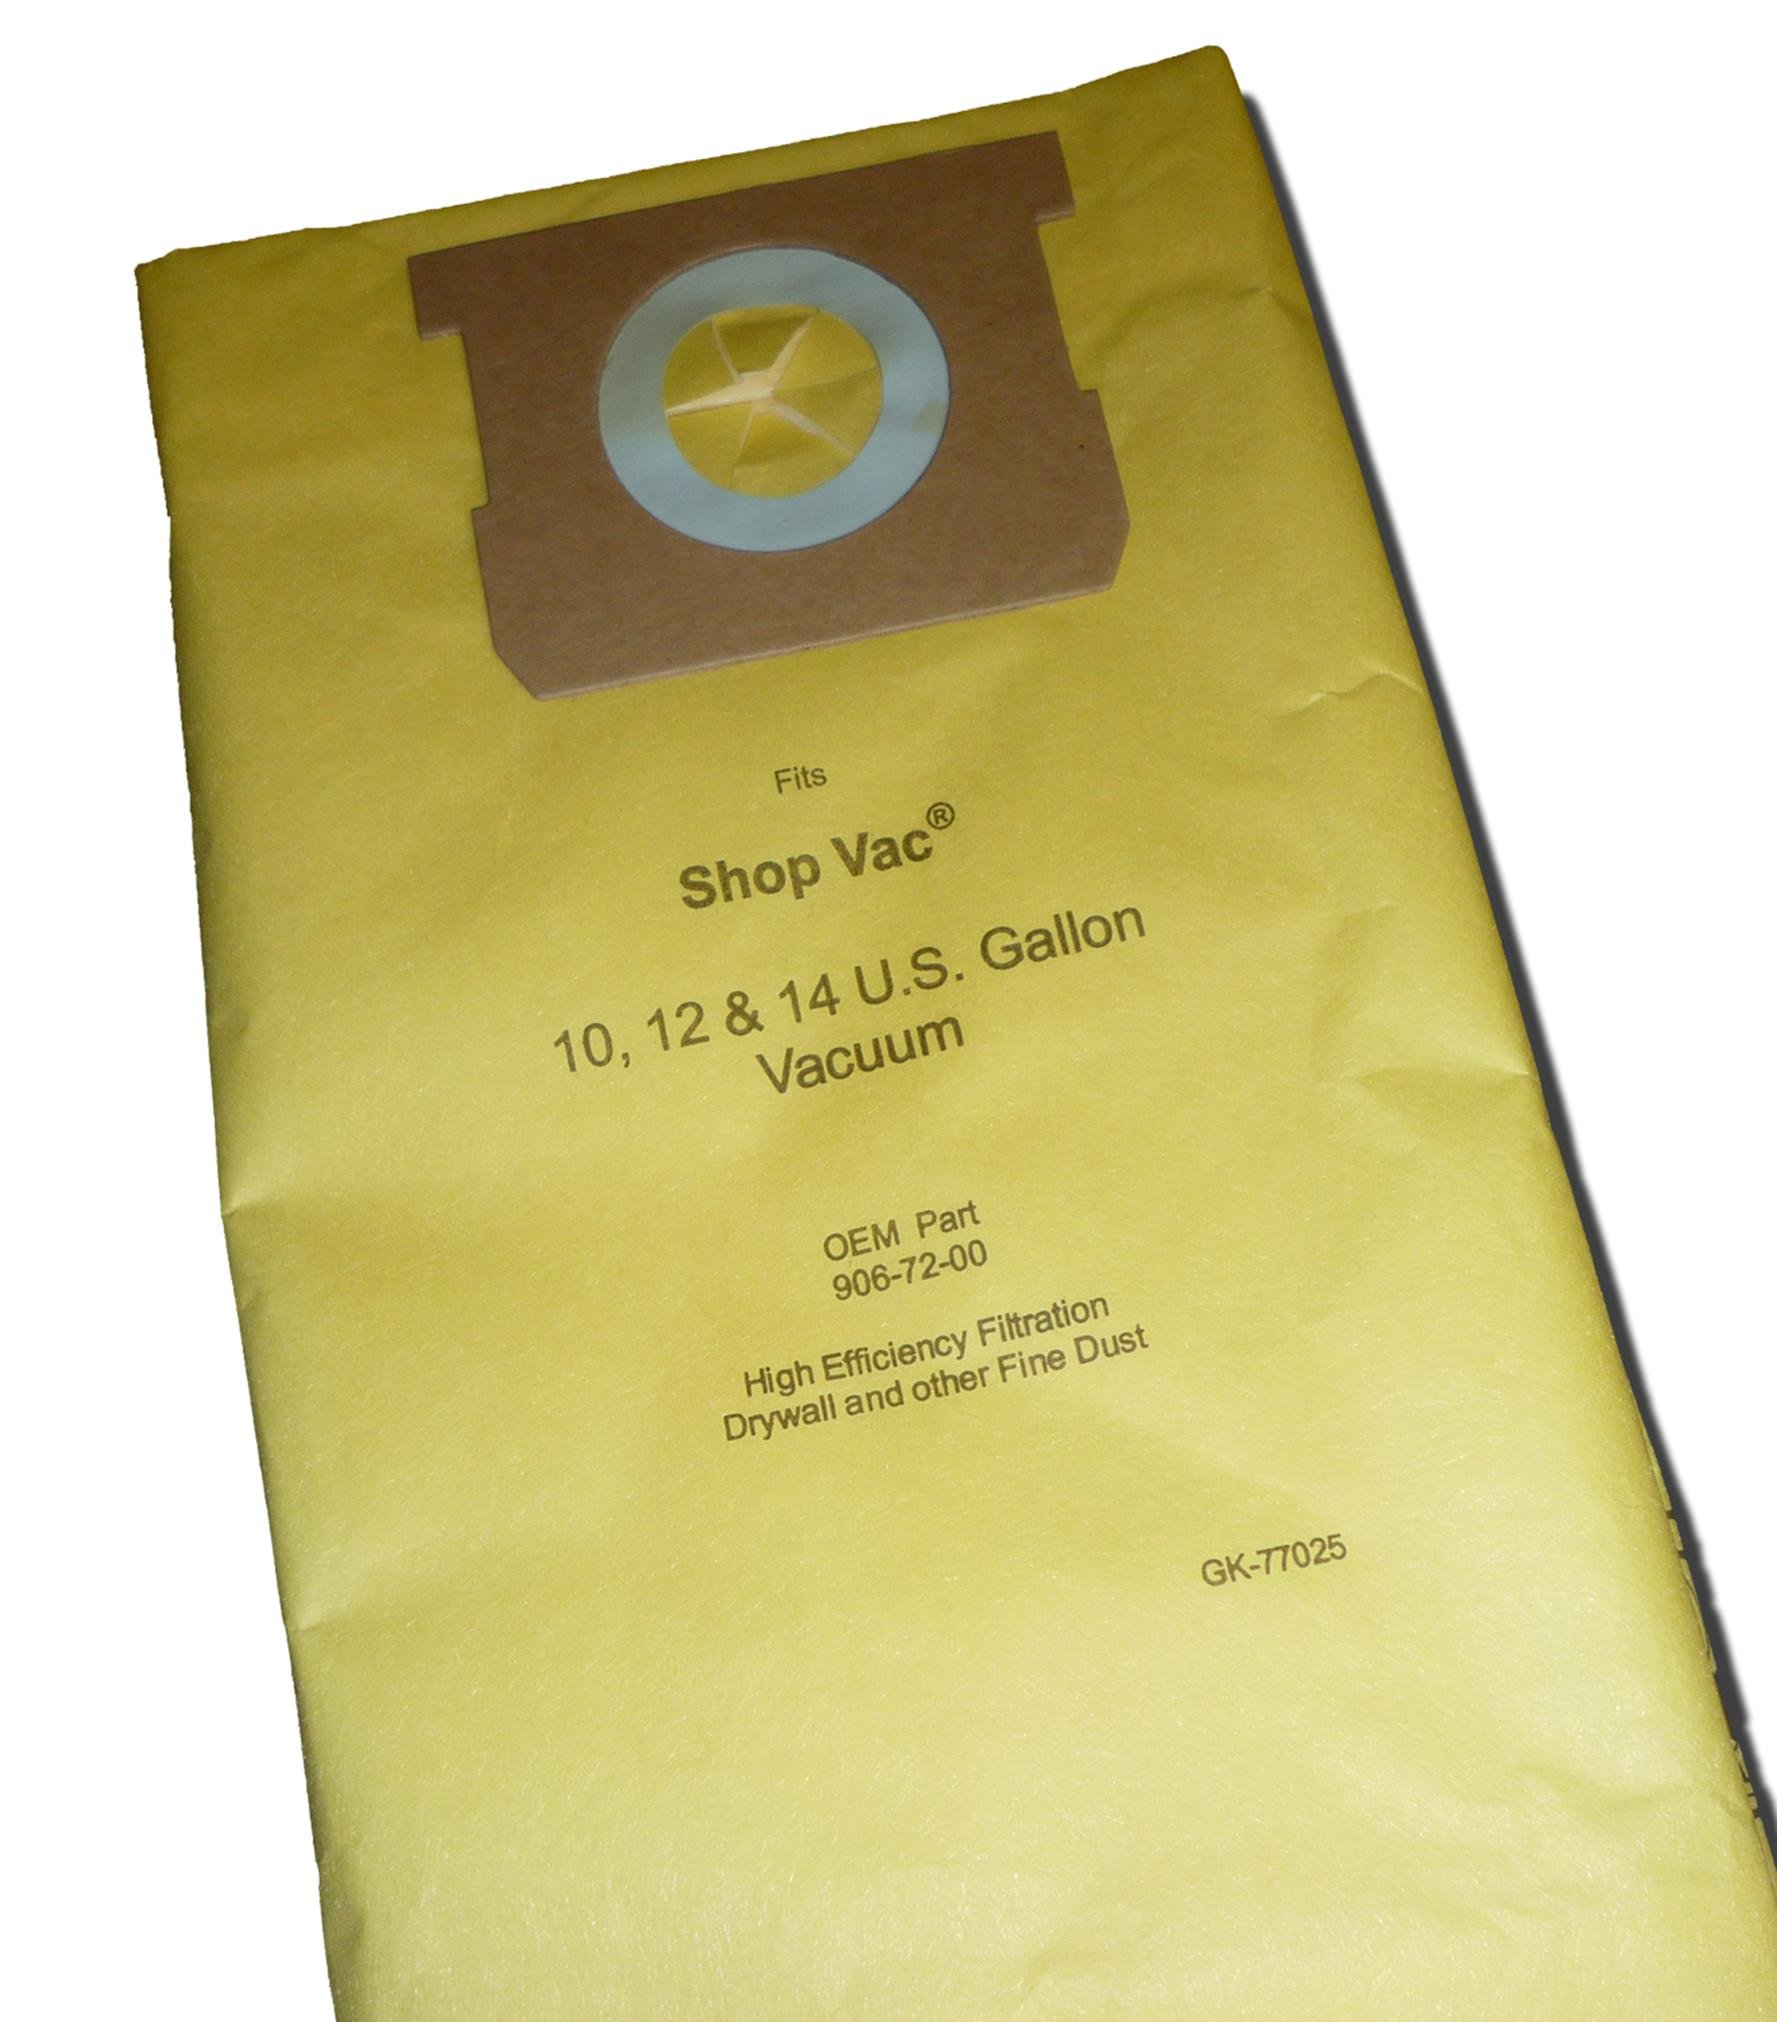 10 Count Shop Vac 10 - 14 Gallon / High Efficiency 770-25 Replacement Paper Filter Bag for Drywall Dust by Green Klean®